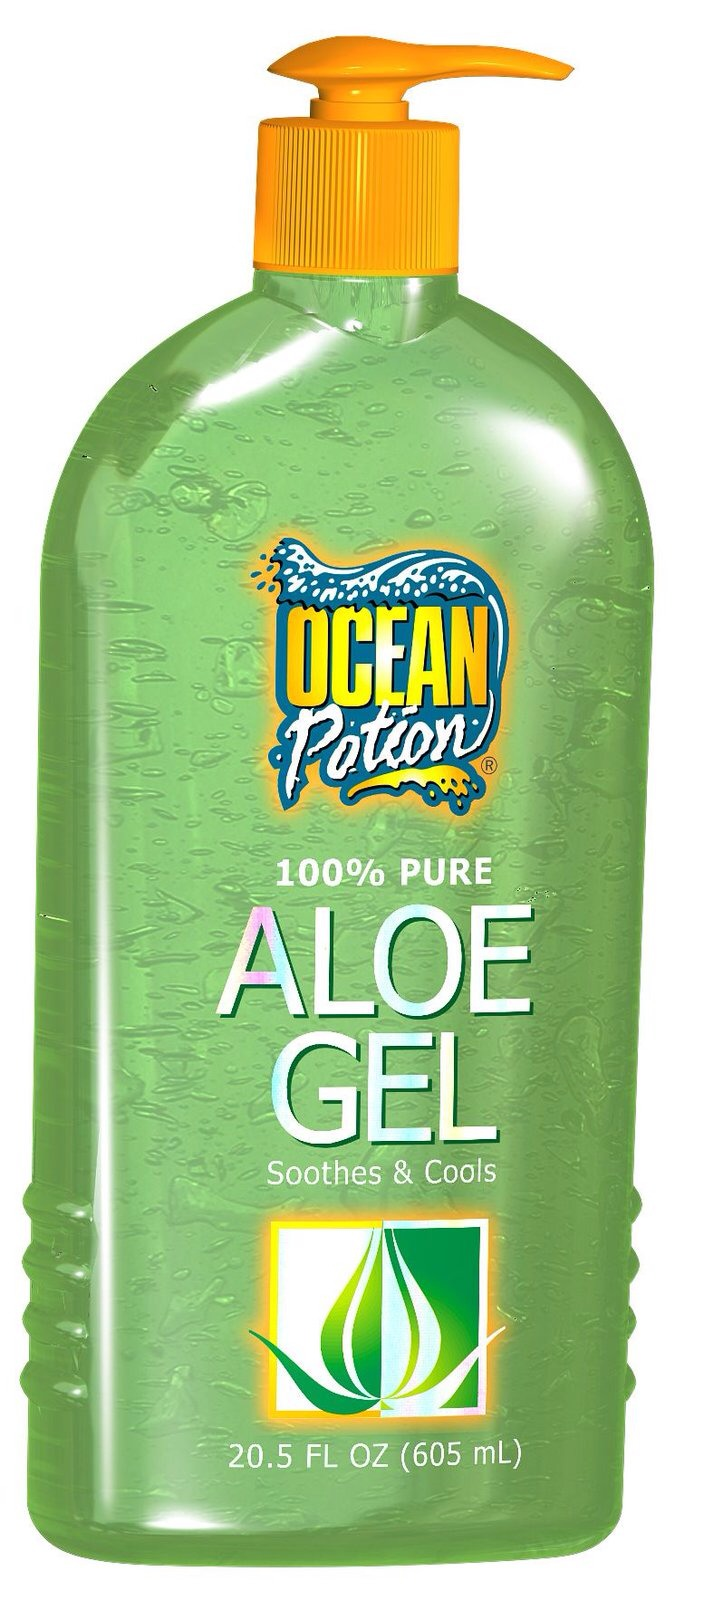 You need Aloe Vera Gel  Can be store bought or fresh